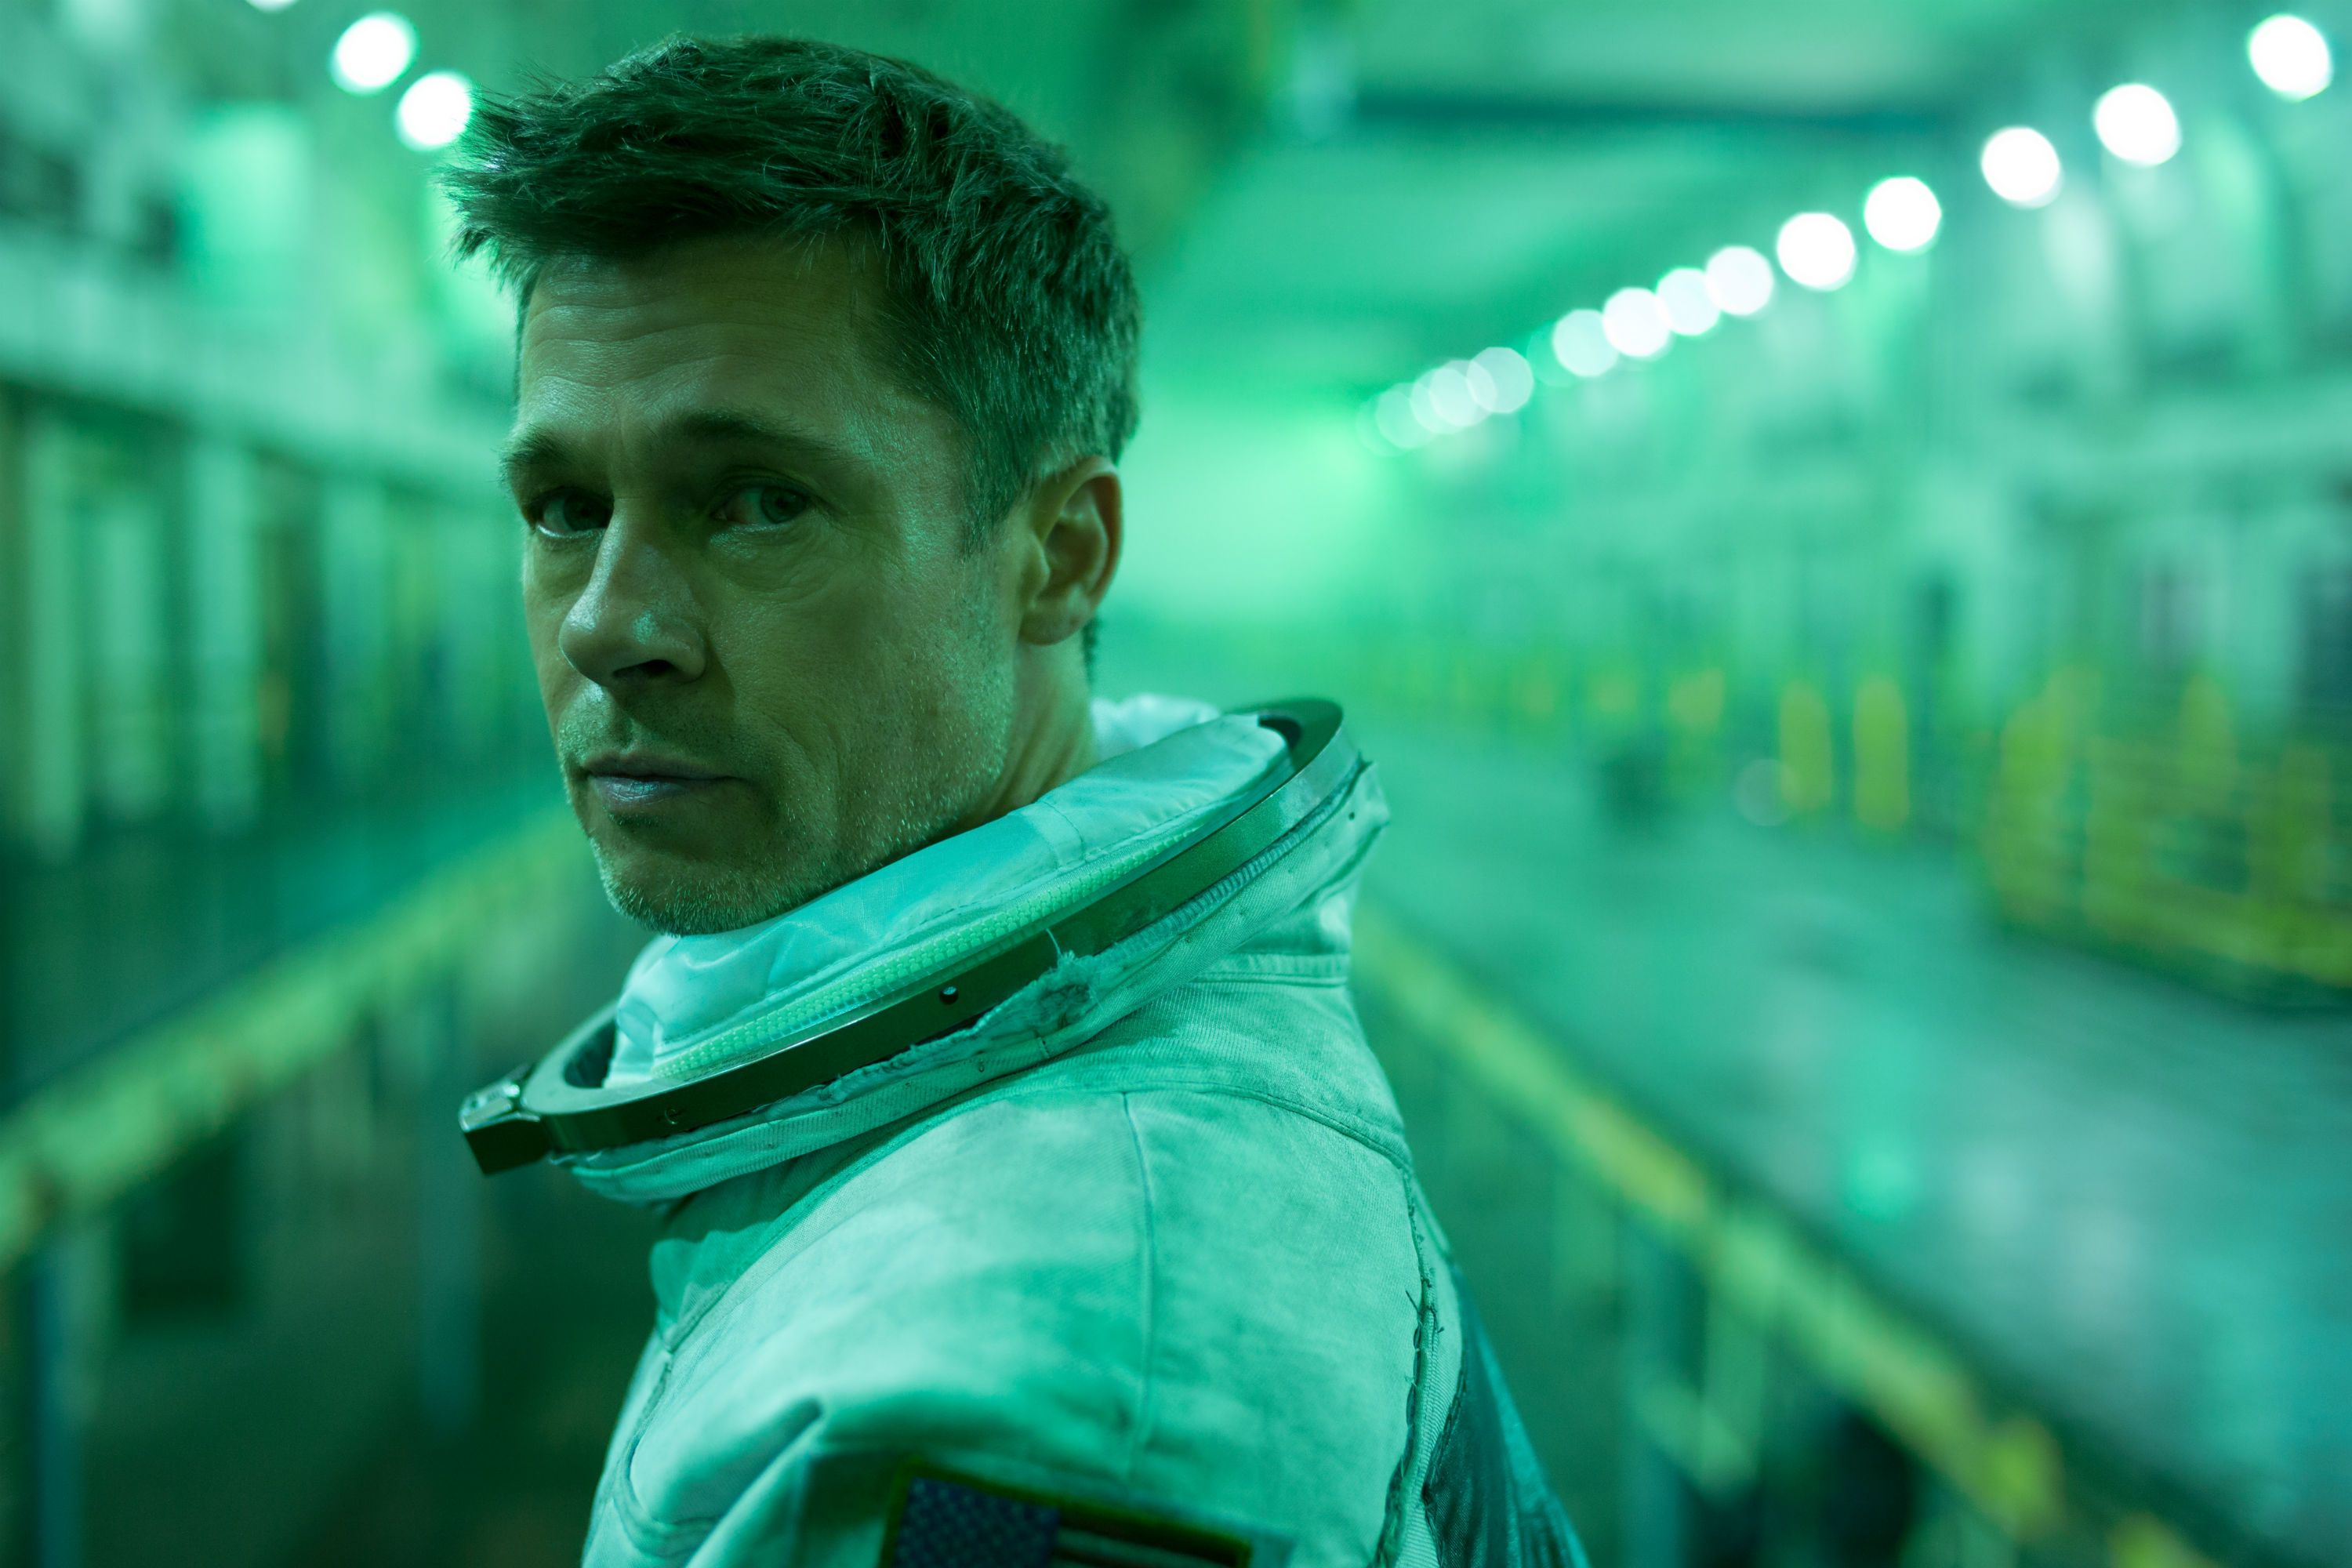 Ad Astra review: Brad Pitt goes to the stars in one of 2019's best movies